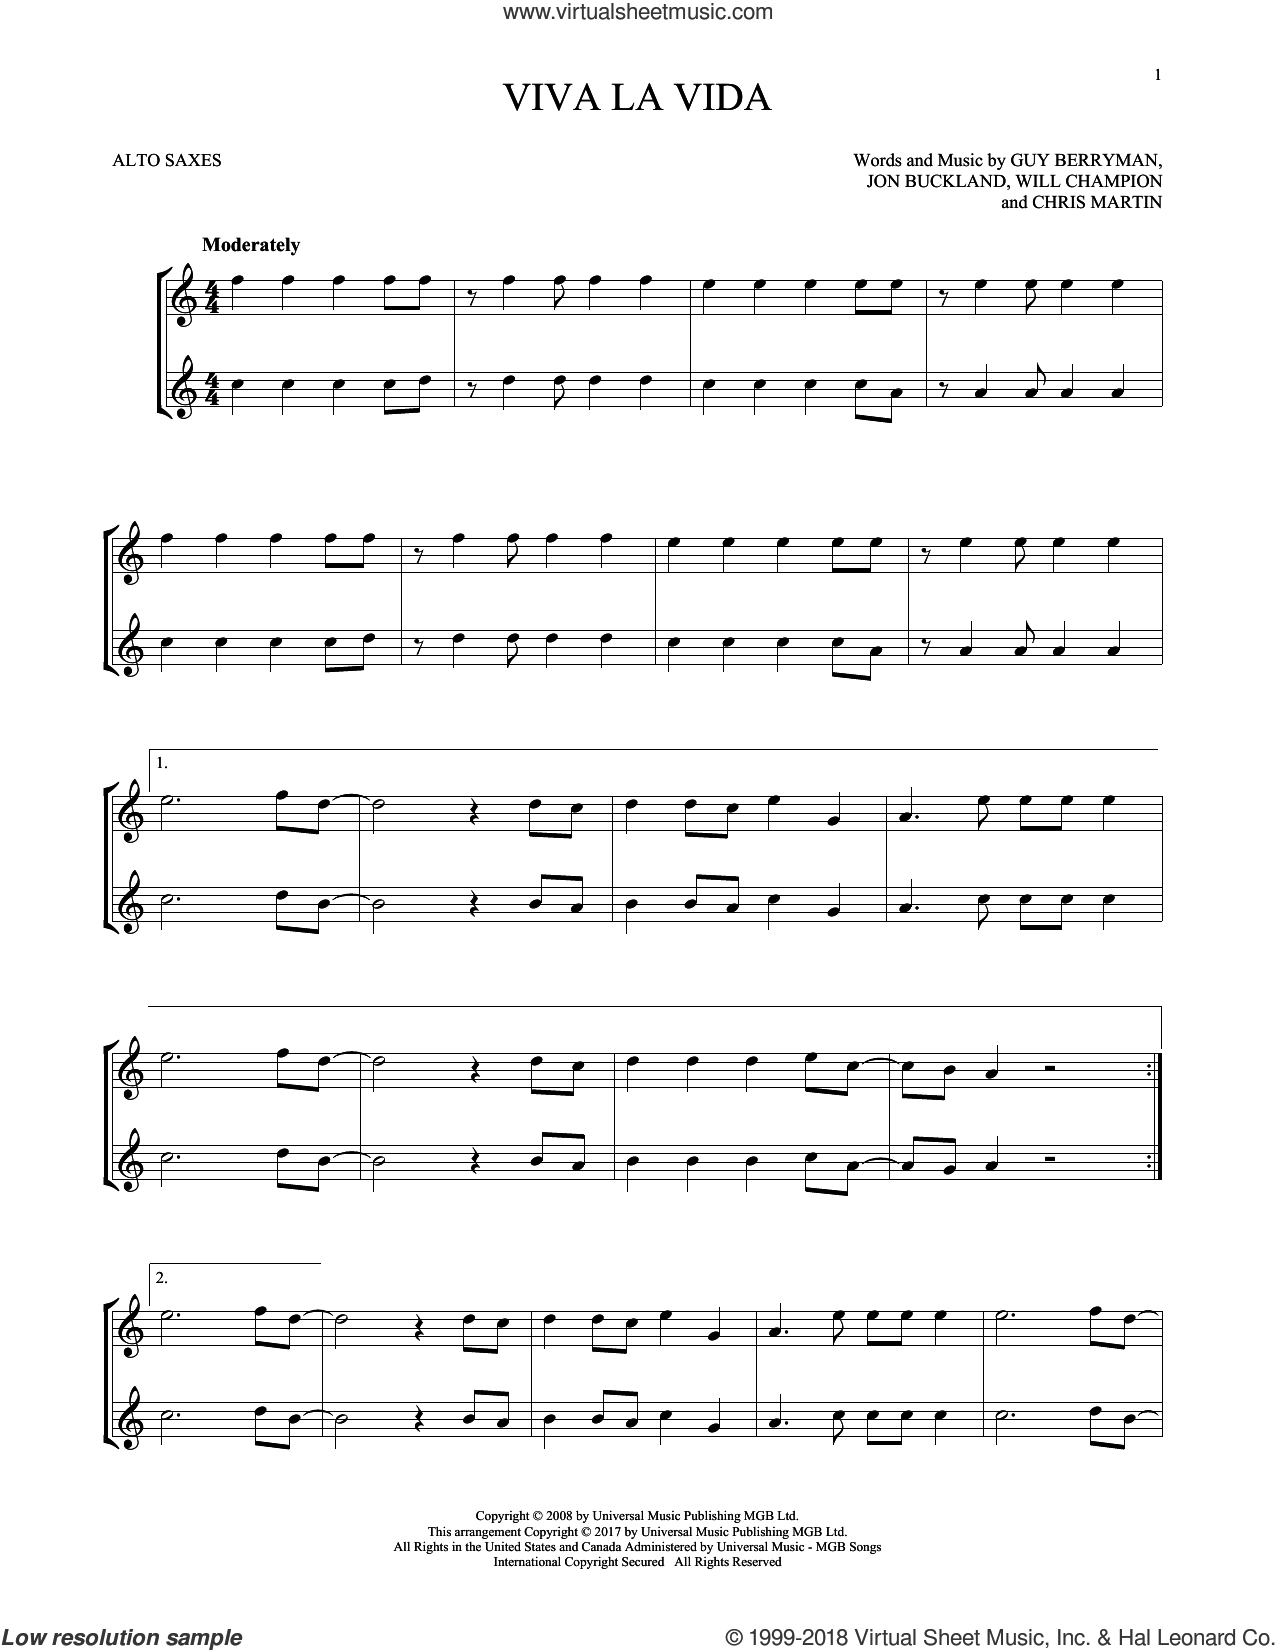 Viva La Vida sheet music for two alto saxophones (duets) by Coldplay, Chris Martin, Guy Berryman, Jon Buckland and Will Champion, intermediate skill level